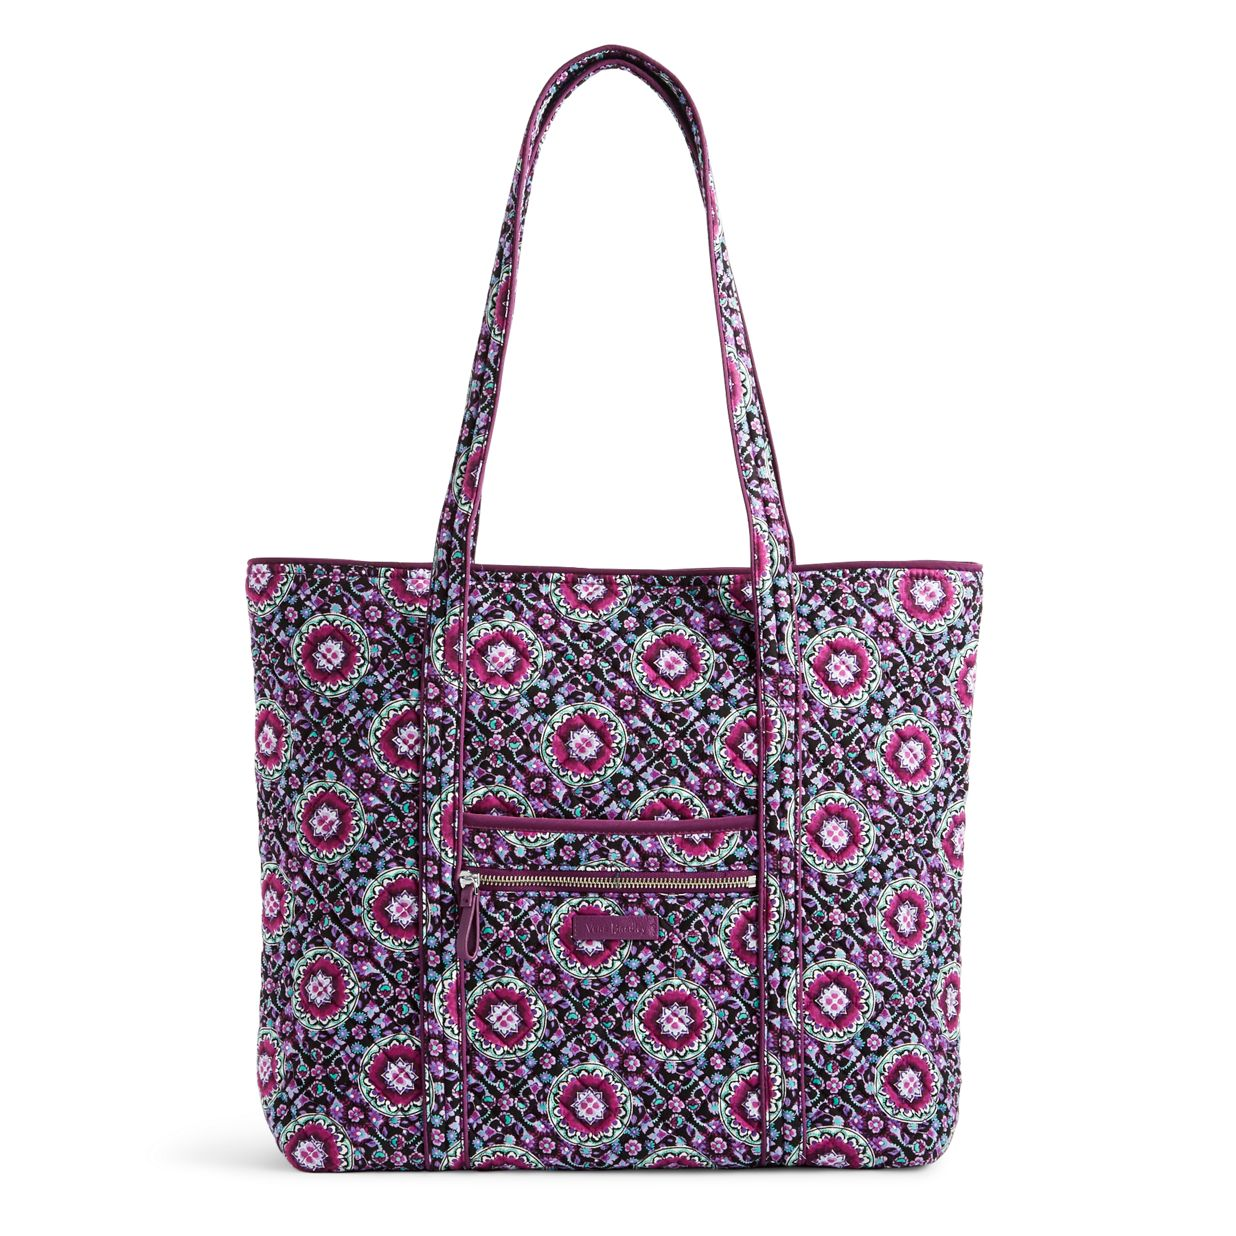 b7fd3a0a2f6f Image of Iconic Vera Tote in Lilac Medallion ...